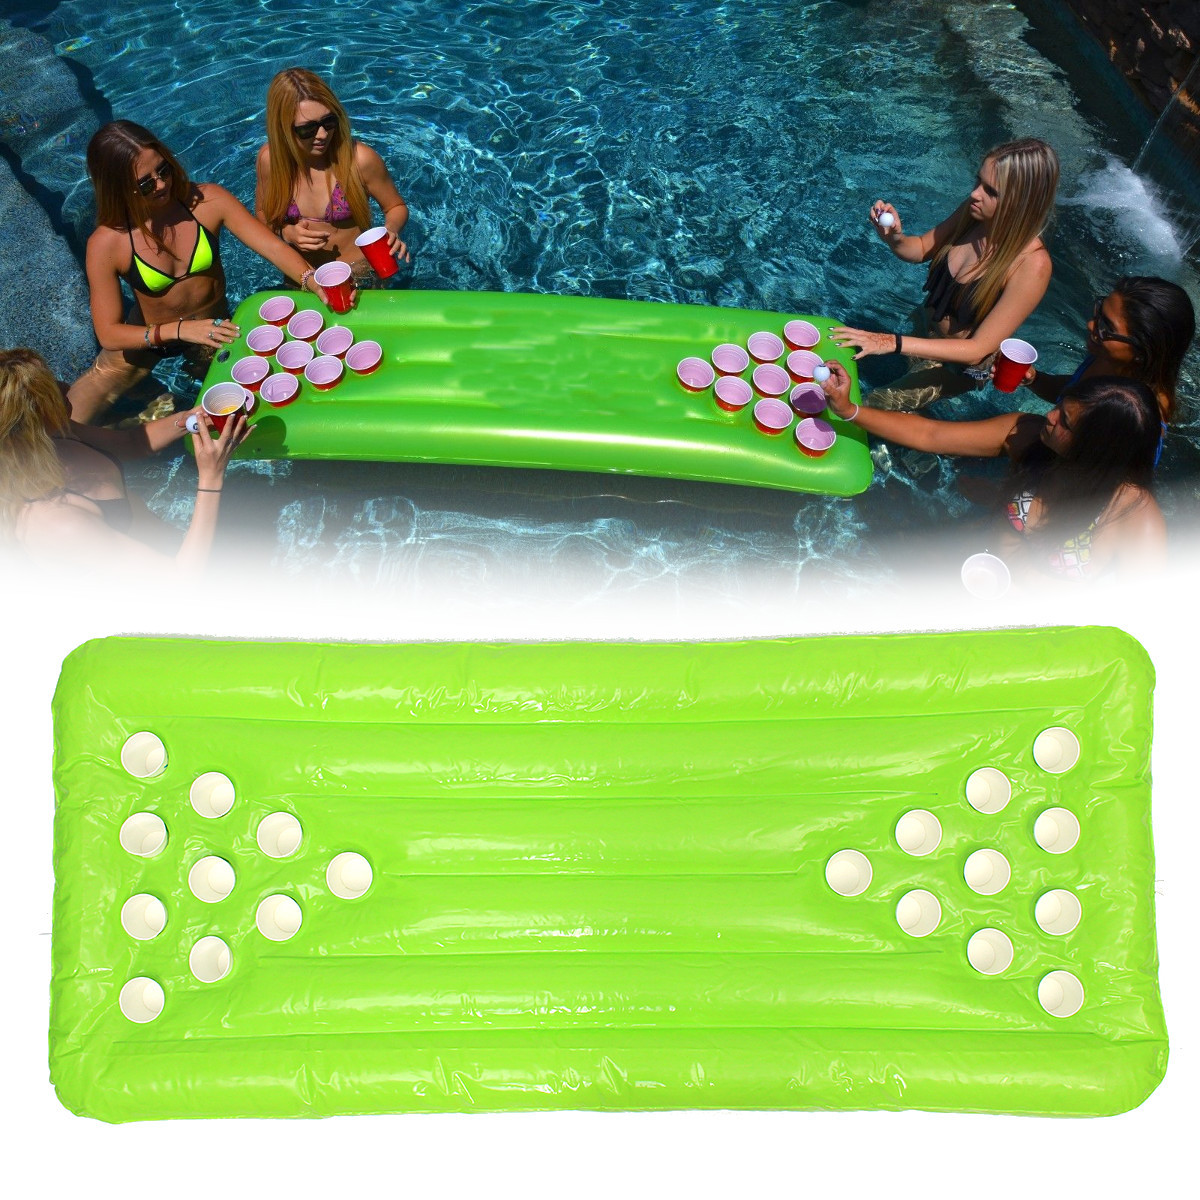 Pvc Inflatable Beer Pong Table 22 Cup Holes Water Floating For Pool Party Drinking Game Alex Nld